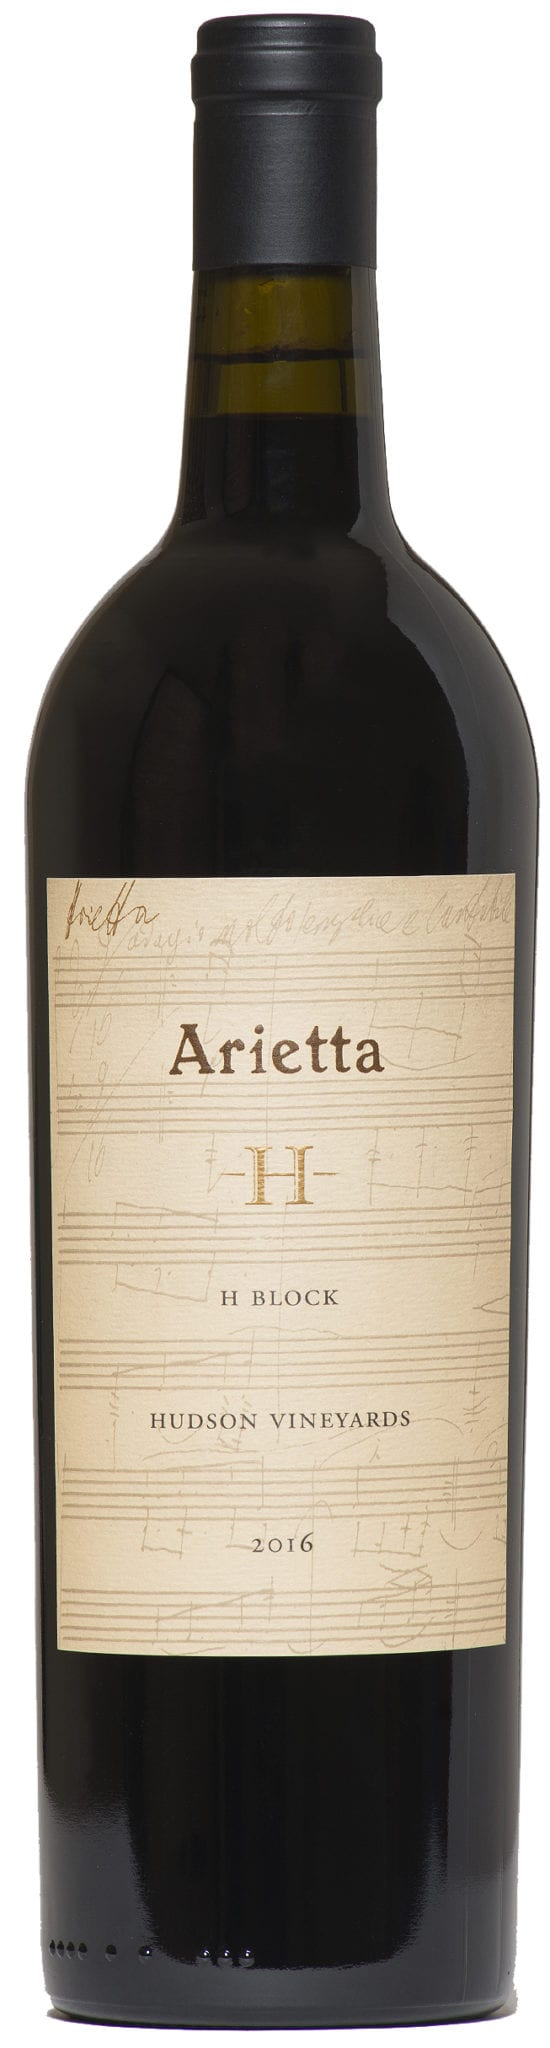 2016 Arietta H Block Bottle Shot